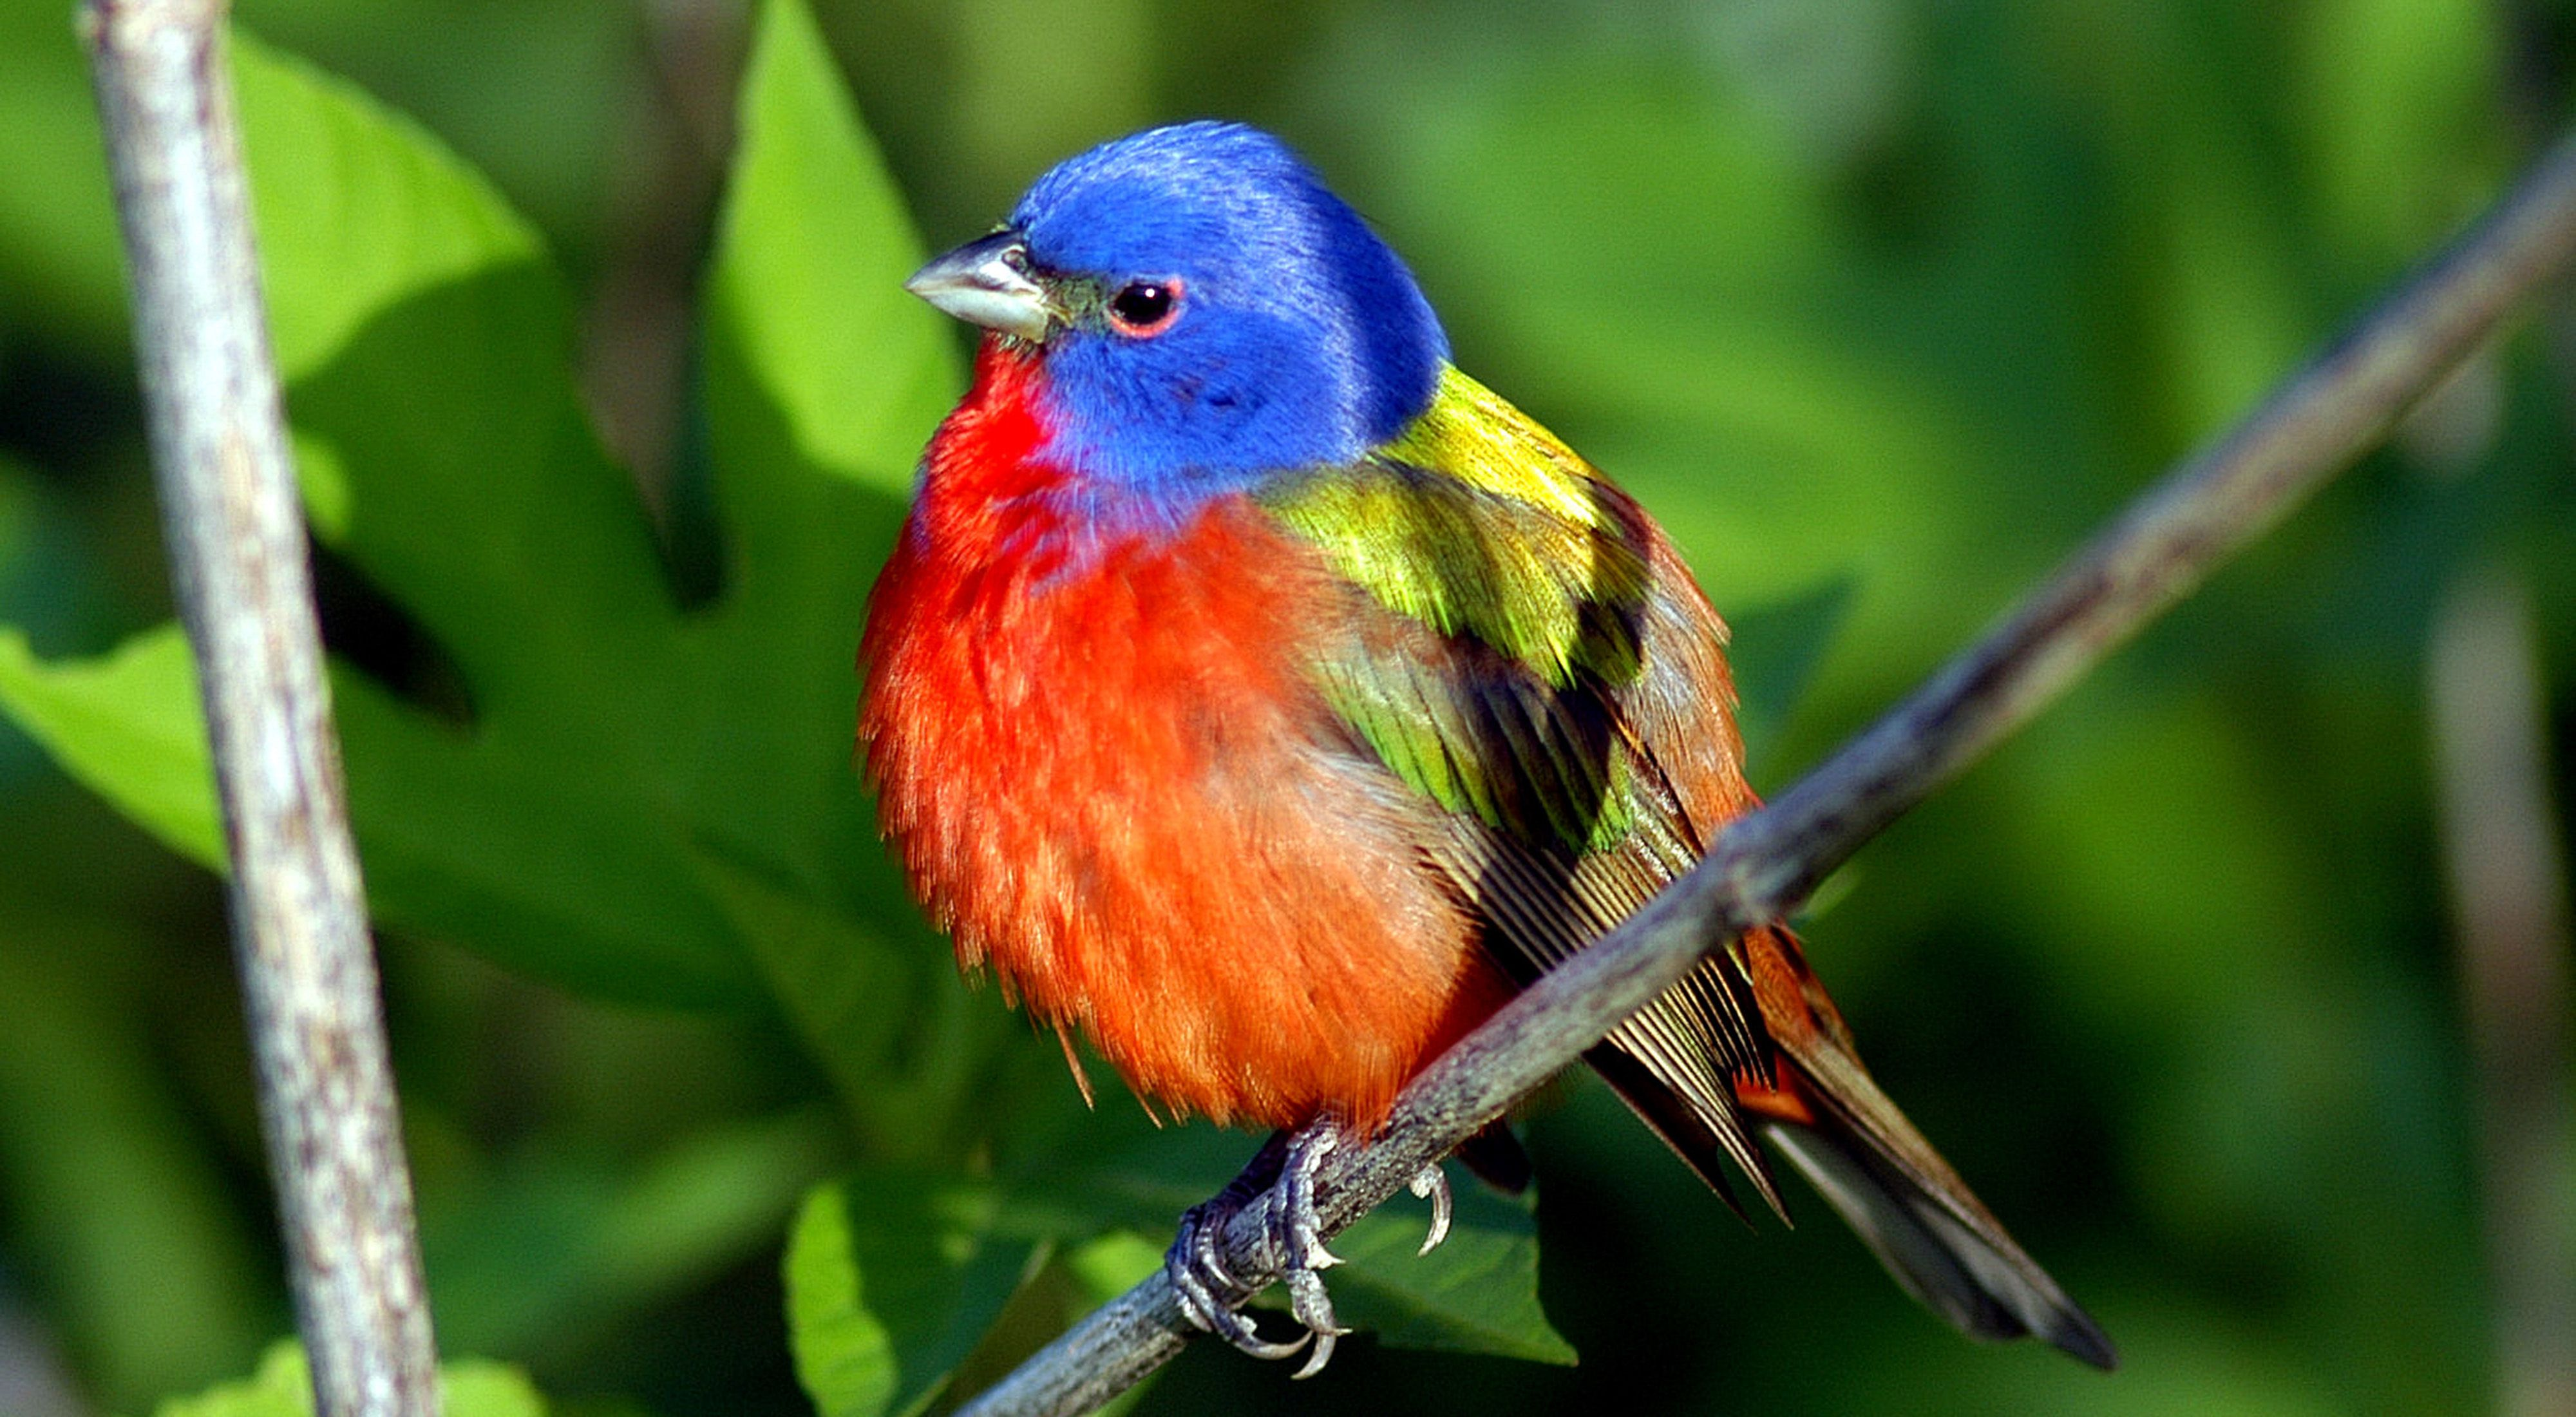 Close up of a painted bunting.